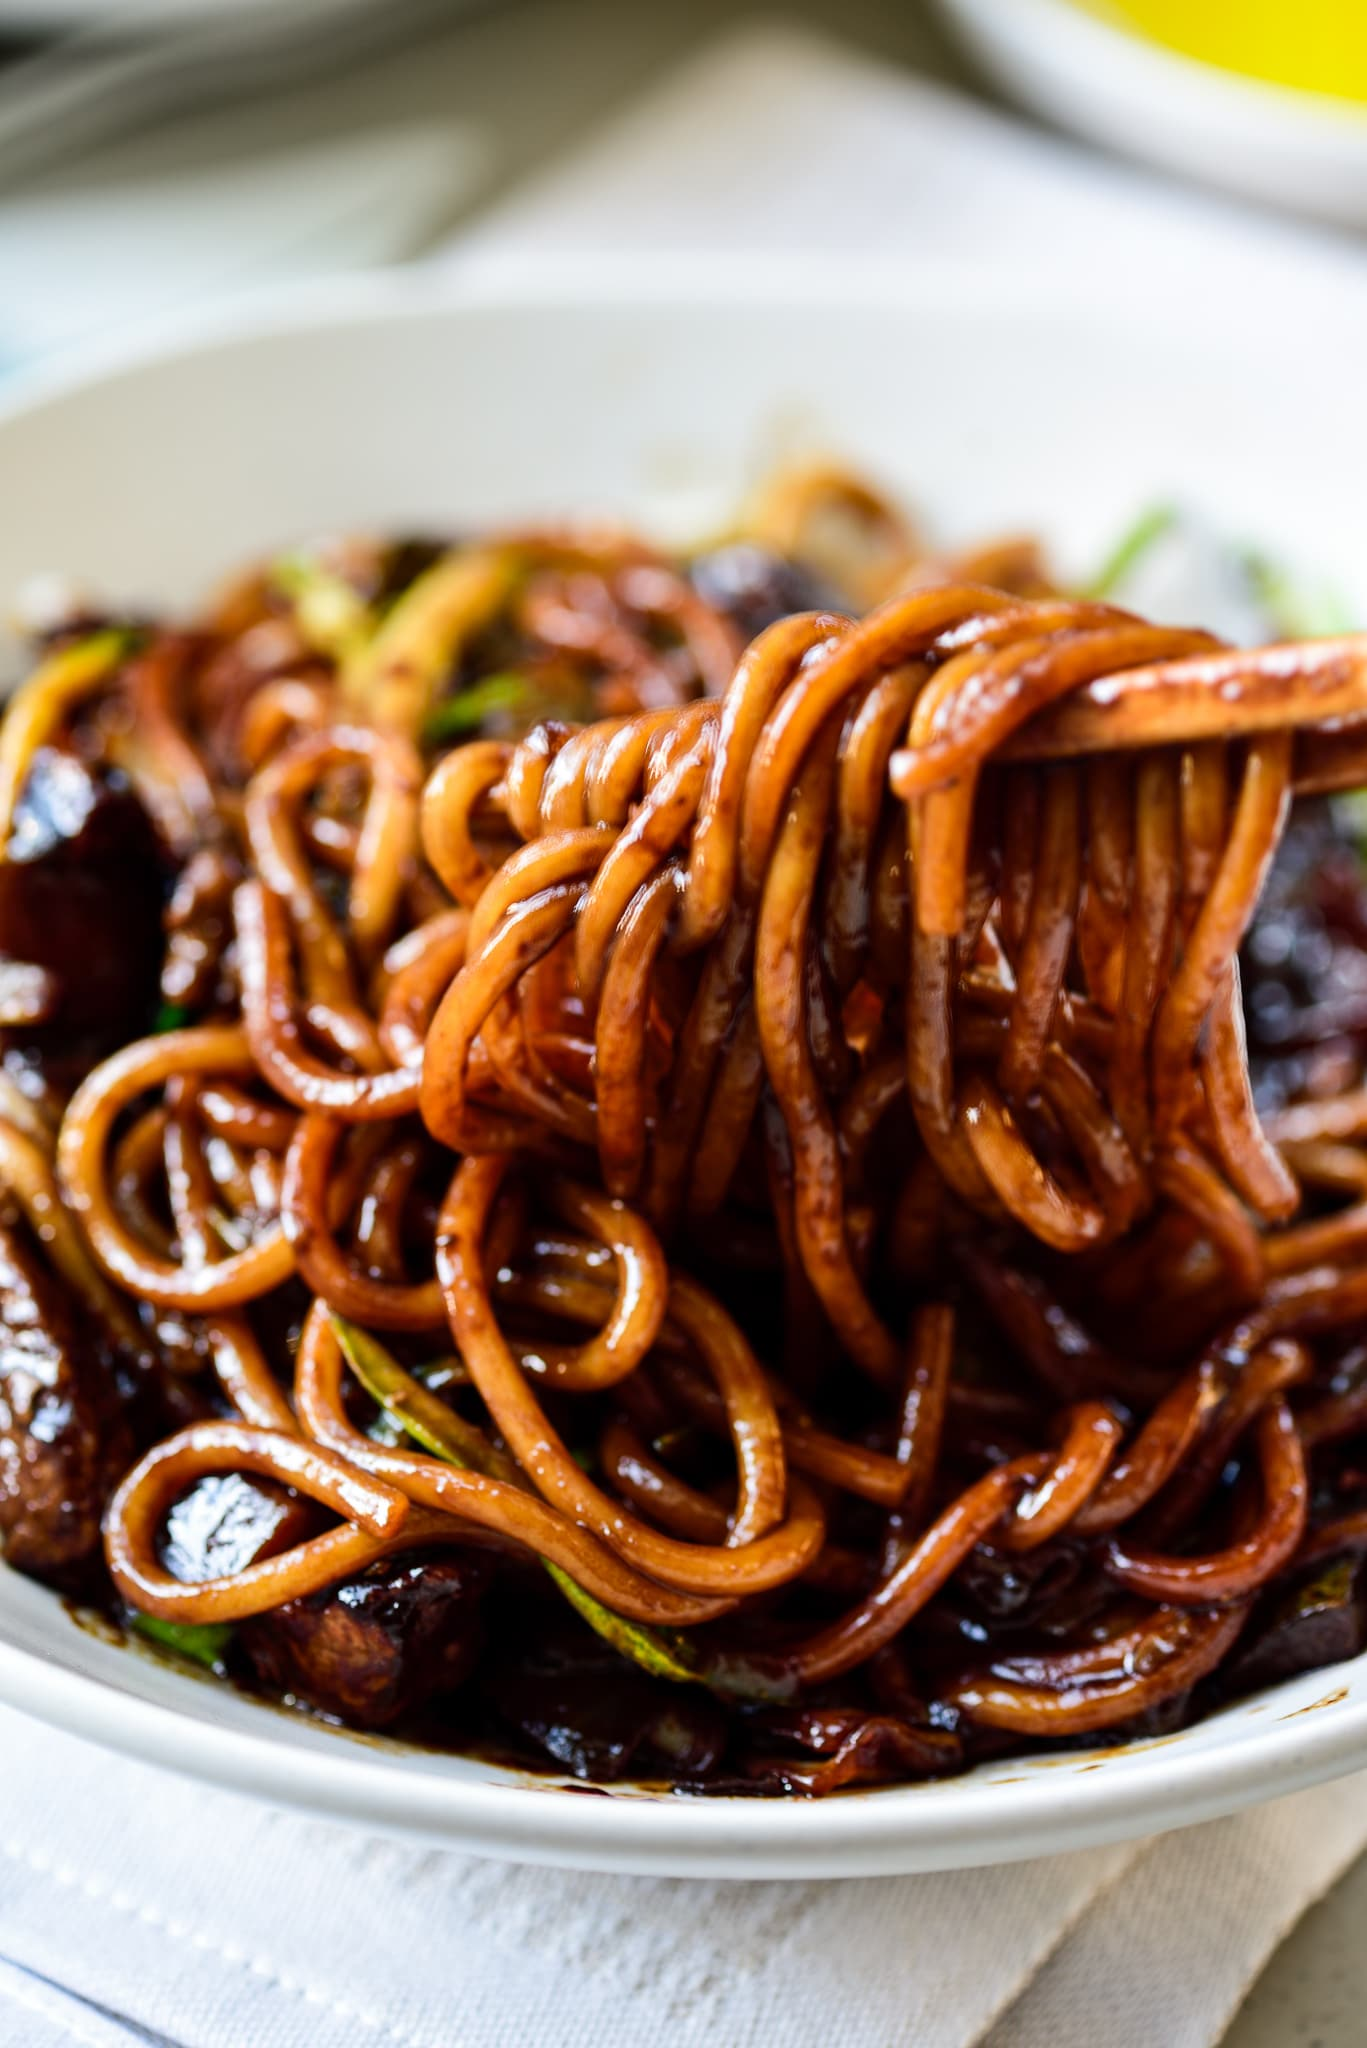 DSC1615 - Jajangmyeon (Noodles in Black Bean Sauce)